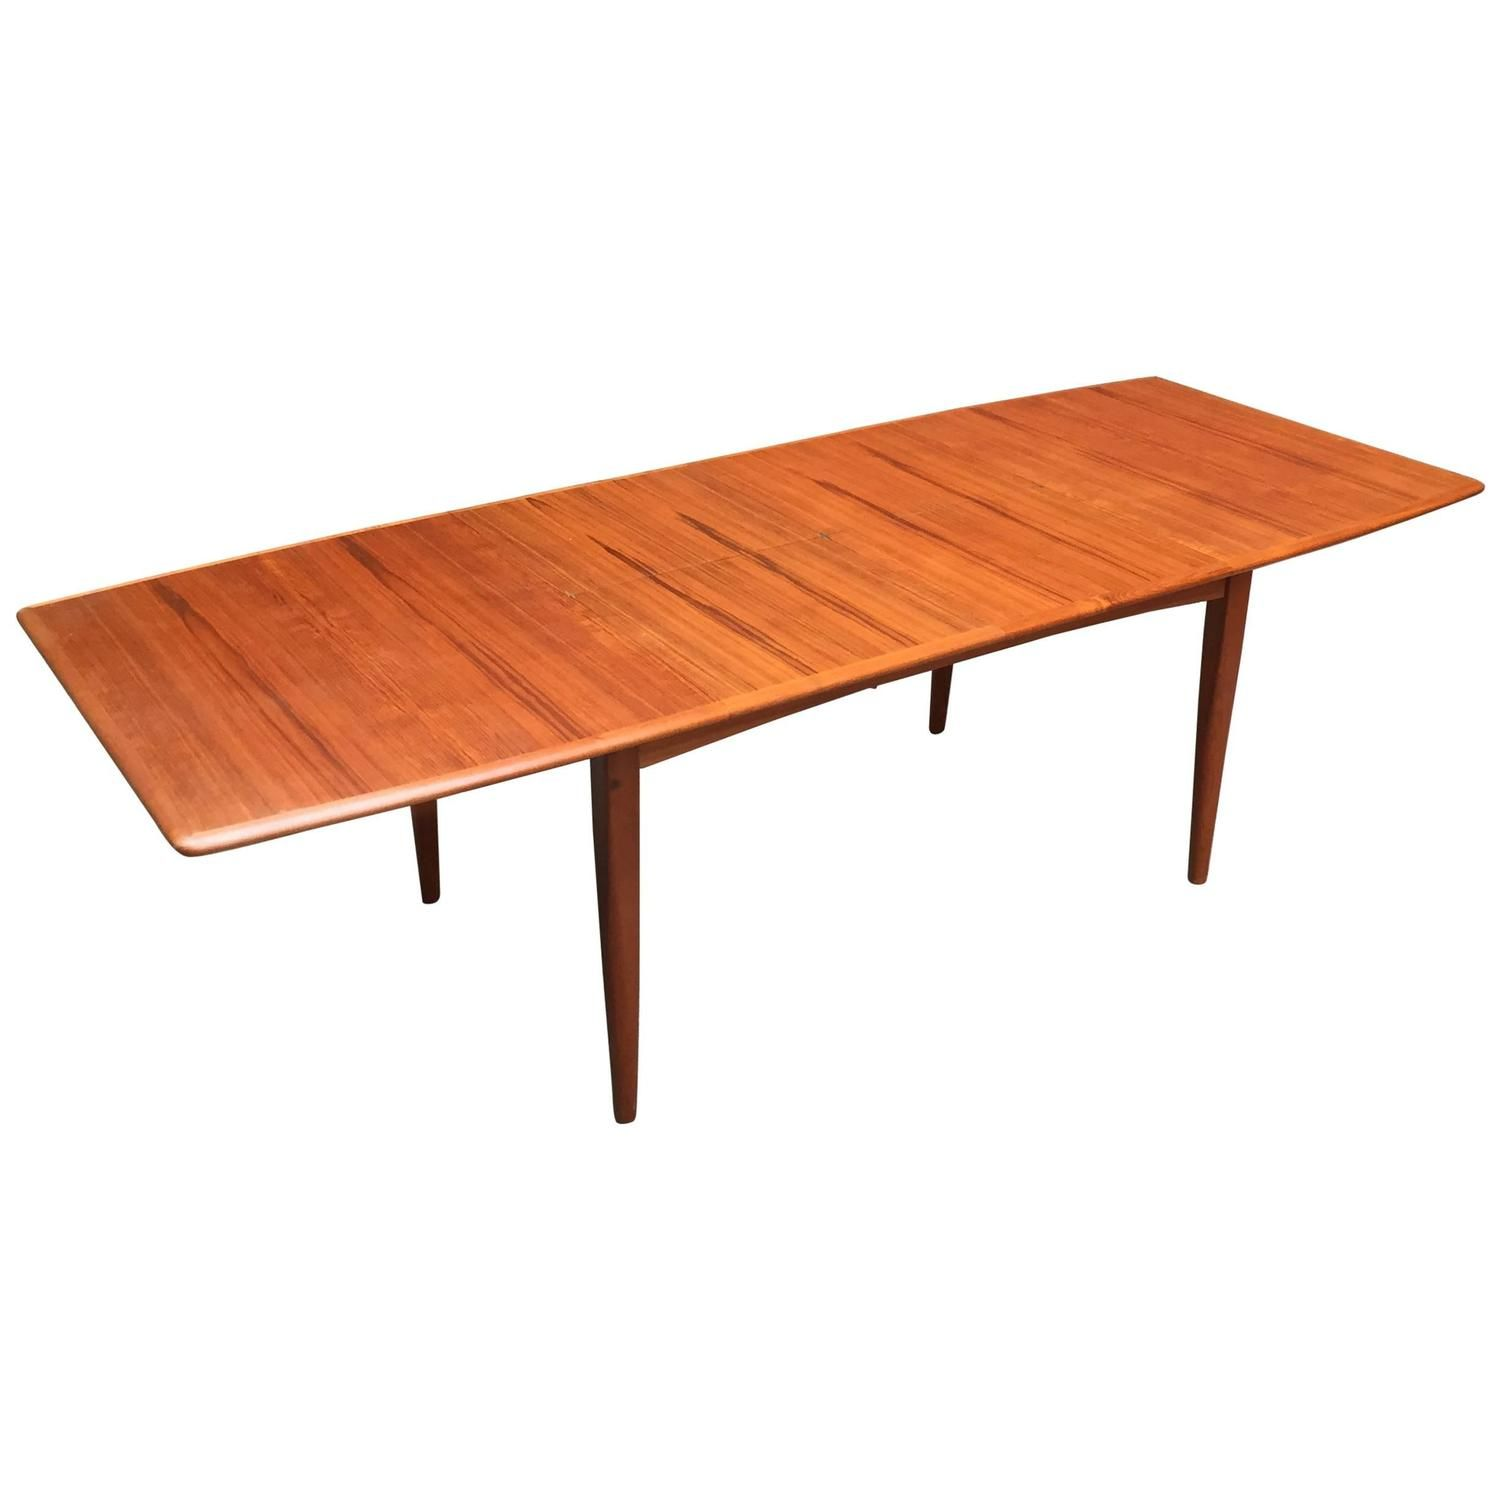 Falster Denmark Teak Banquet Table Banquet Tables Teak Table